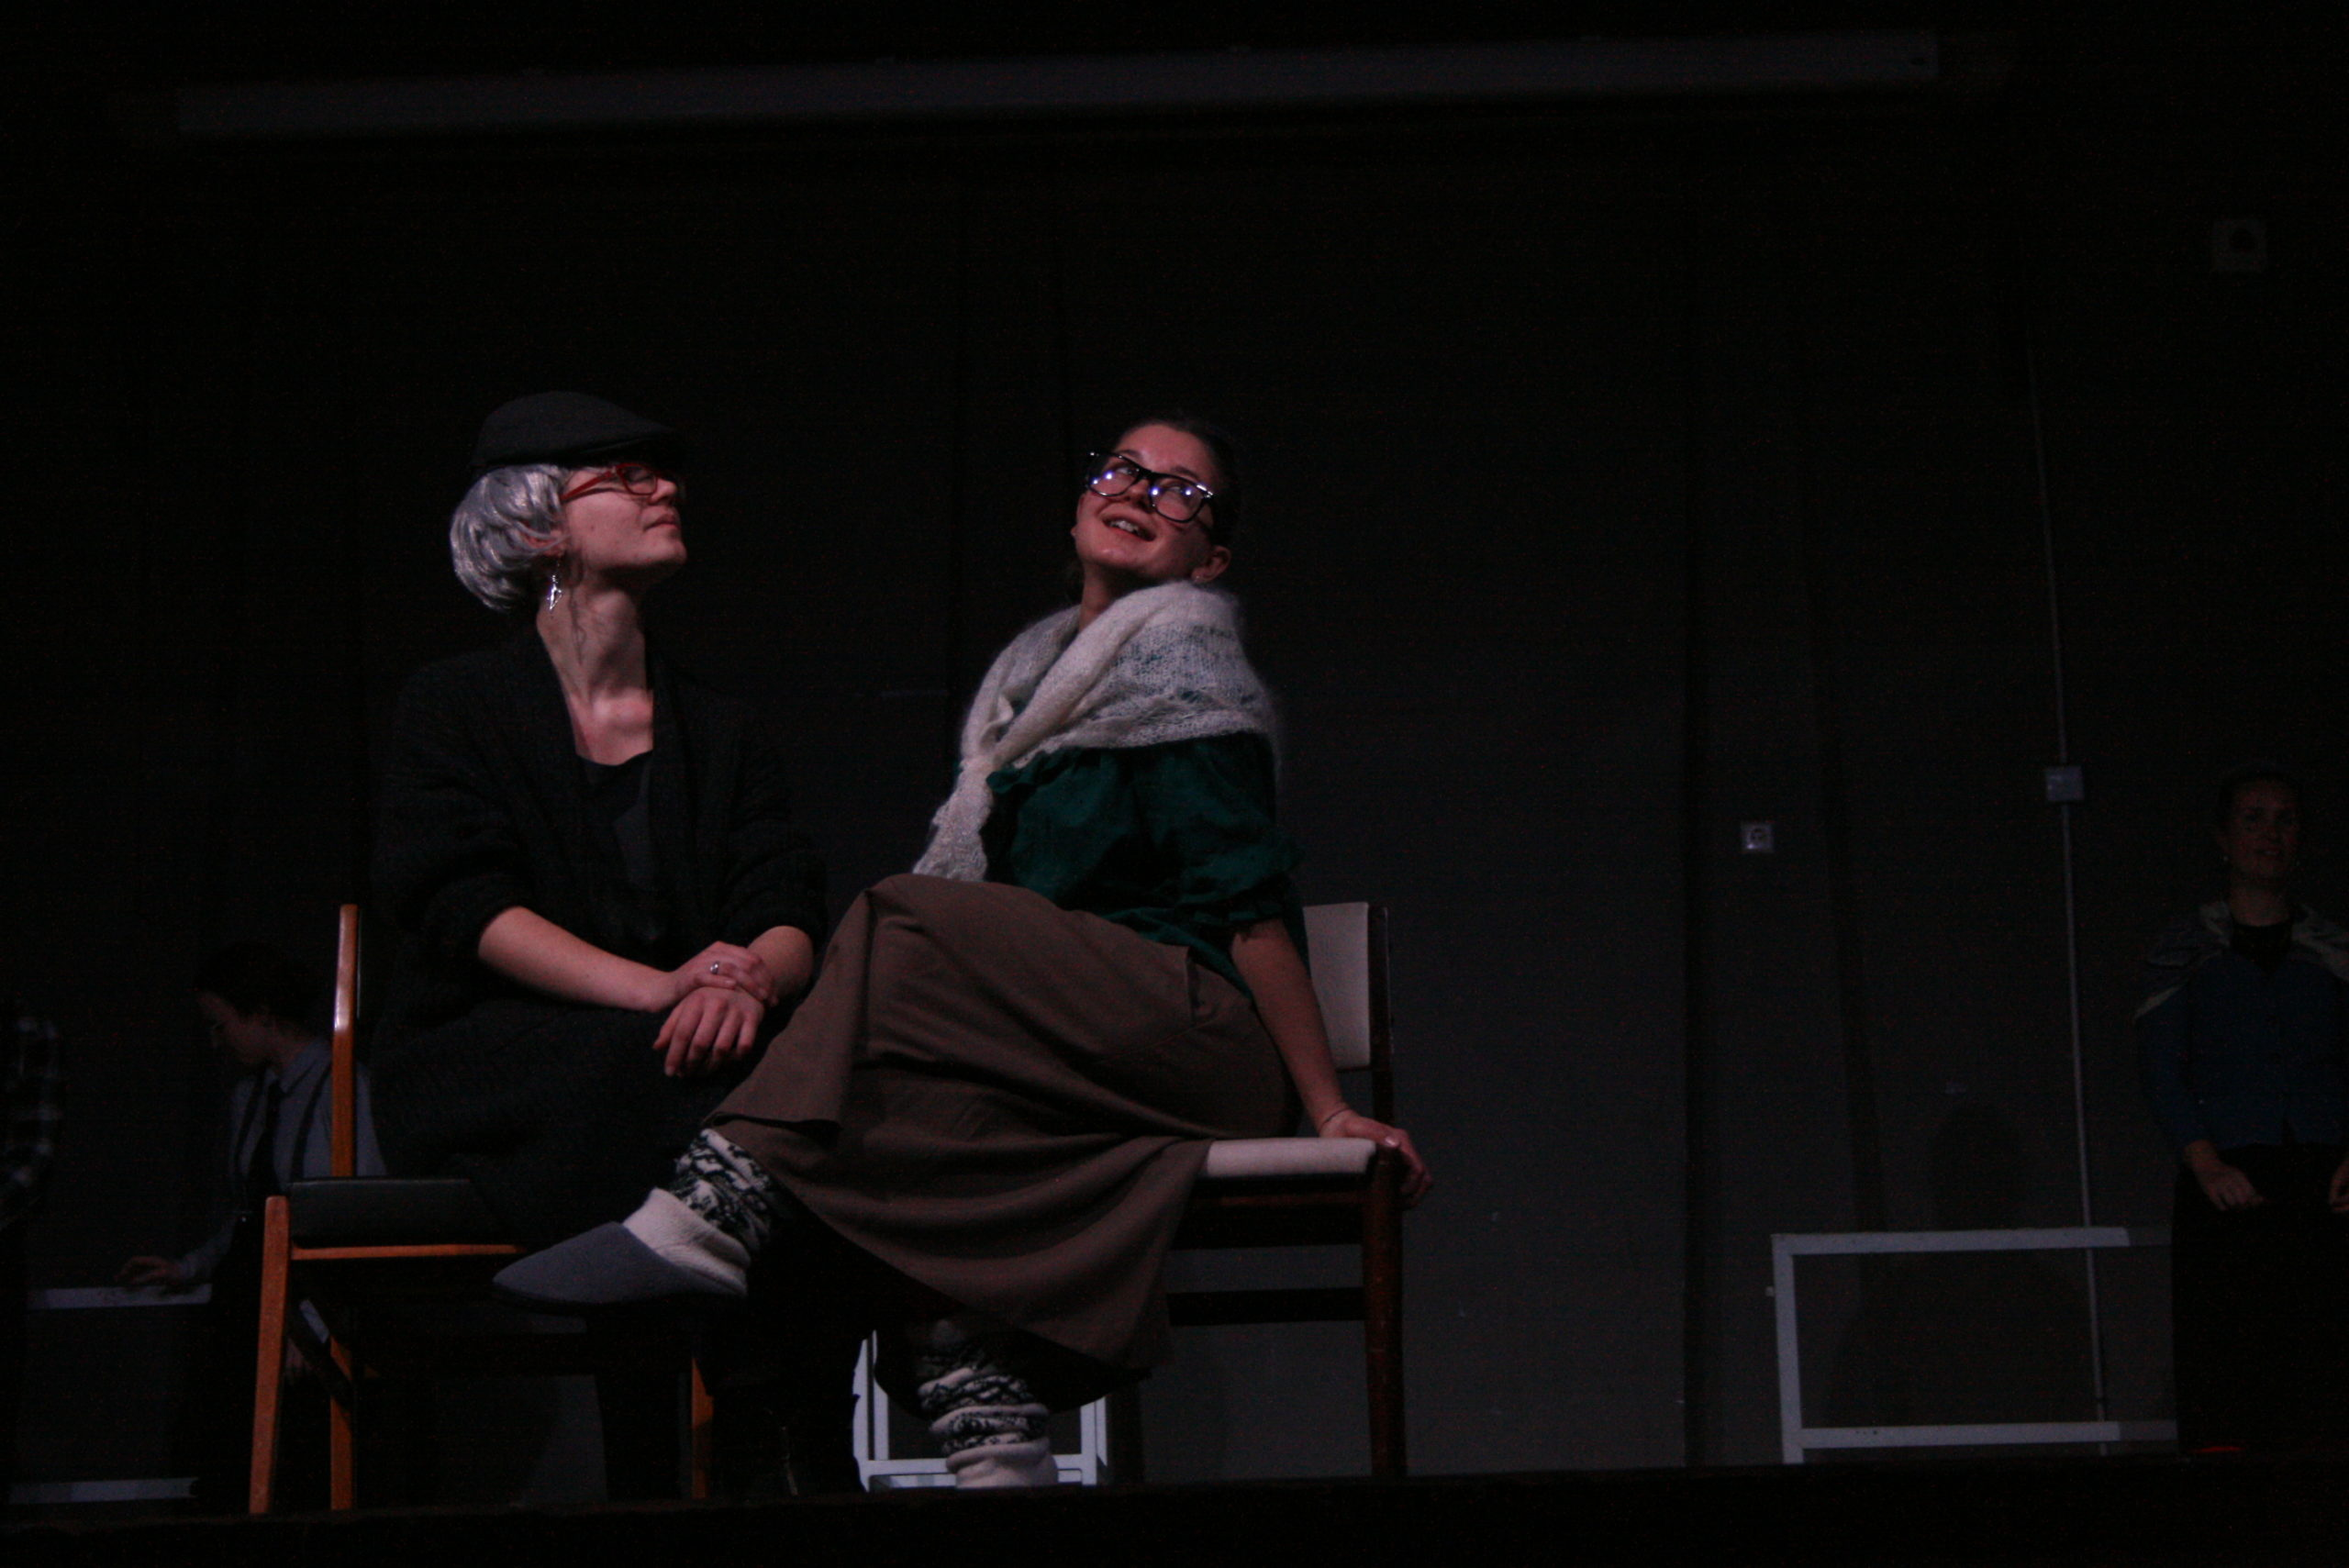 """Photo from the show """"The Chairs"""". Two female actor sit on chairs, dressed like old ladies. One of them looks flirty or happily nostalgic"""